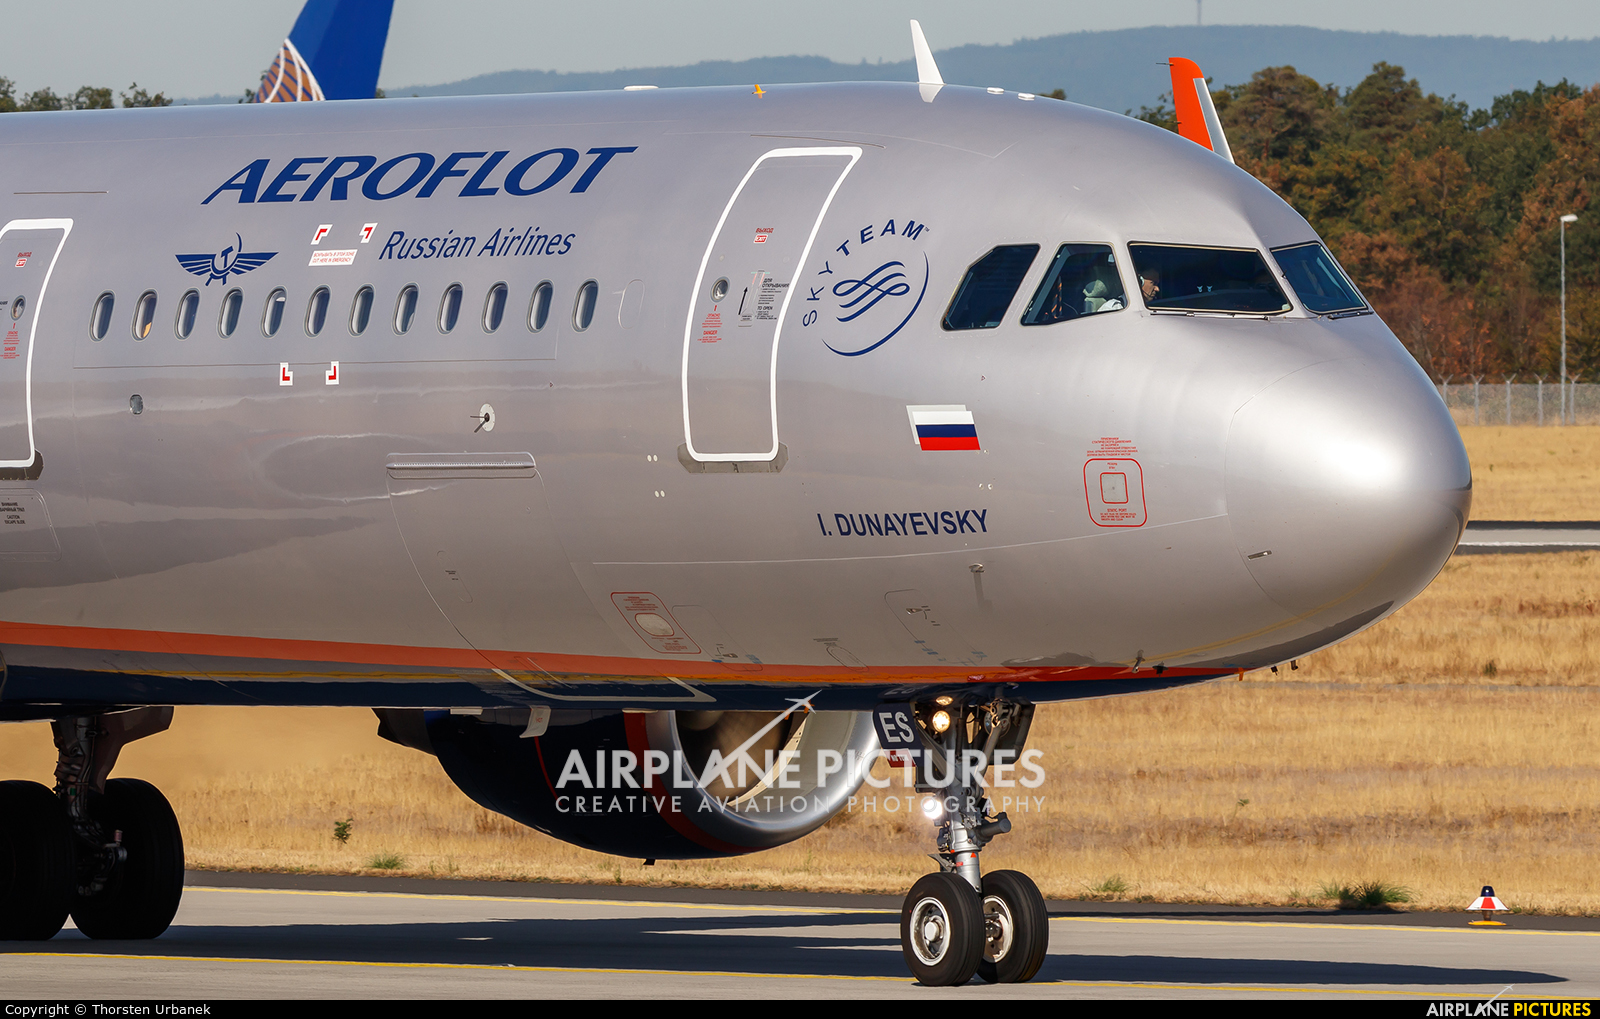 Aeroflot VP-BES aircraft at Frankfurt